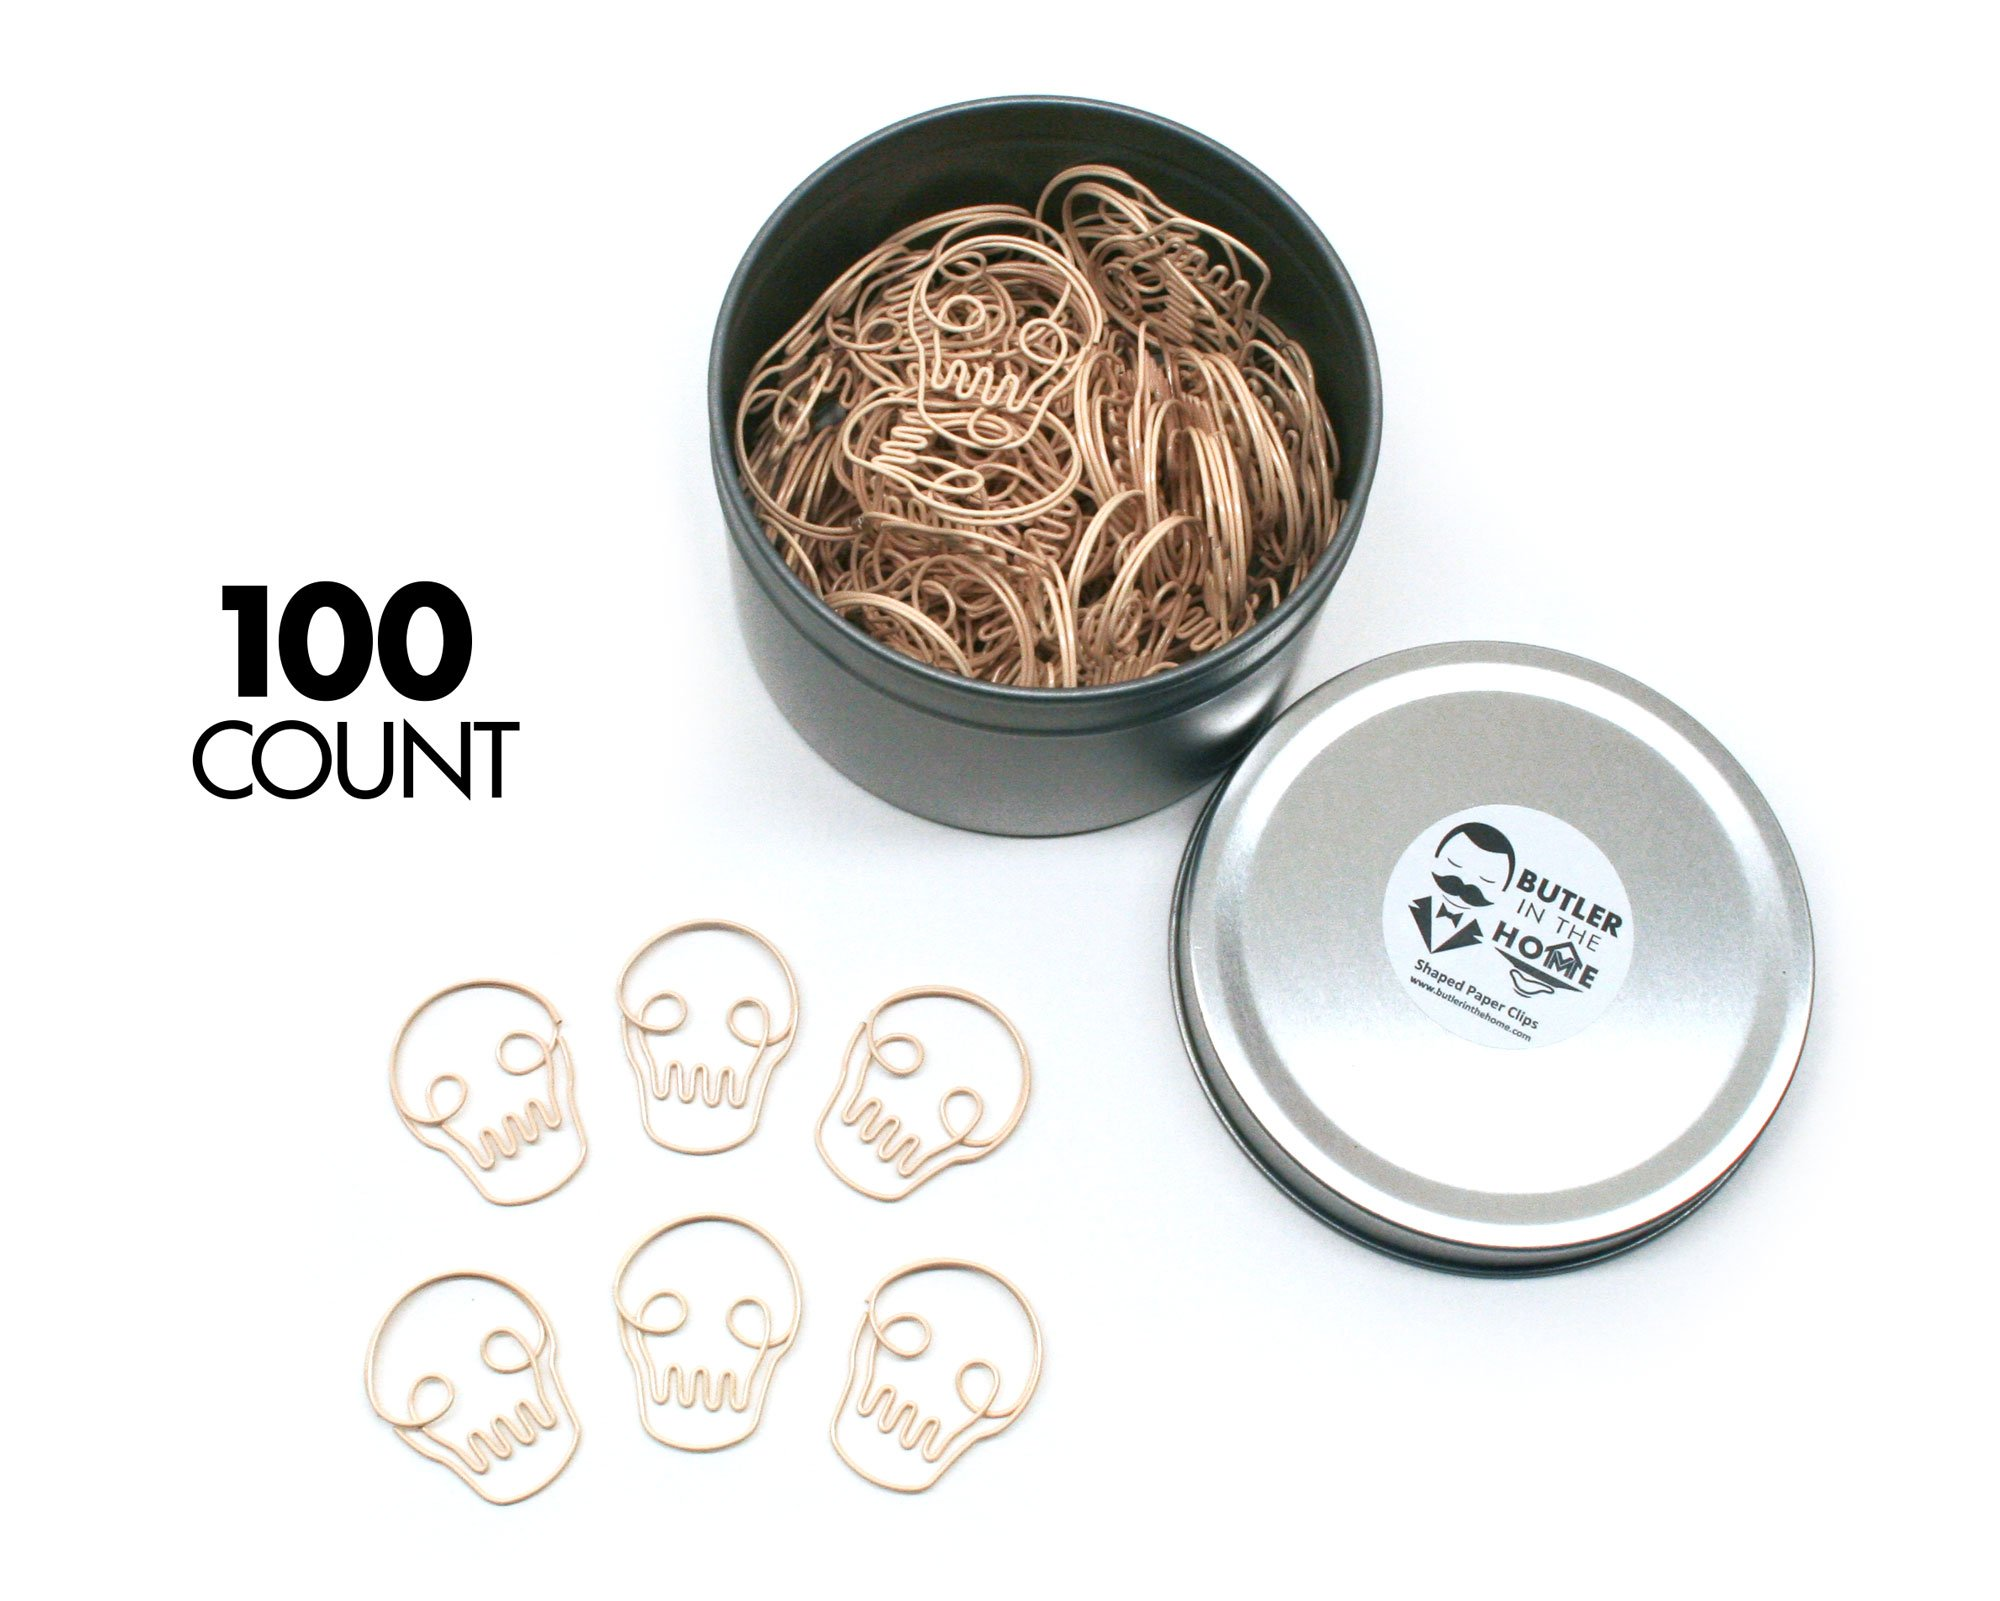 Butler in the Home Skull Head Skeleton Shaped Paper Clips Great For Paper Clip Collectors or Office Gift - Comes in Round Tin with Lid and Gift Box (100 Count Bone Colored)